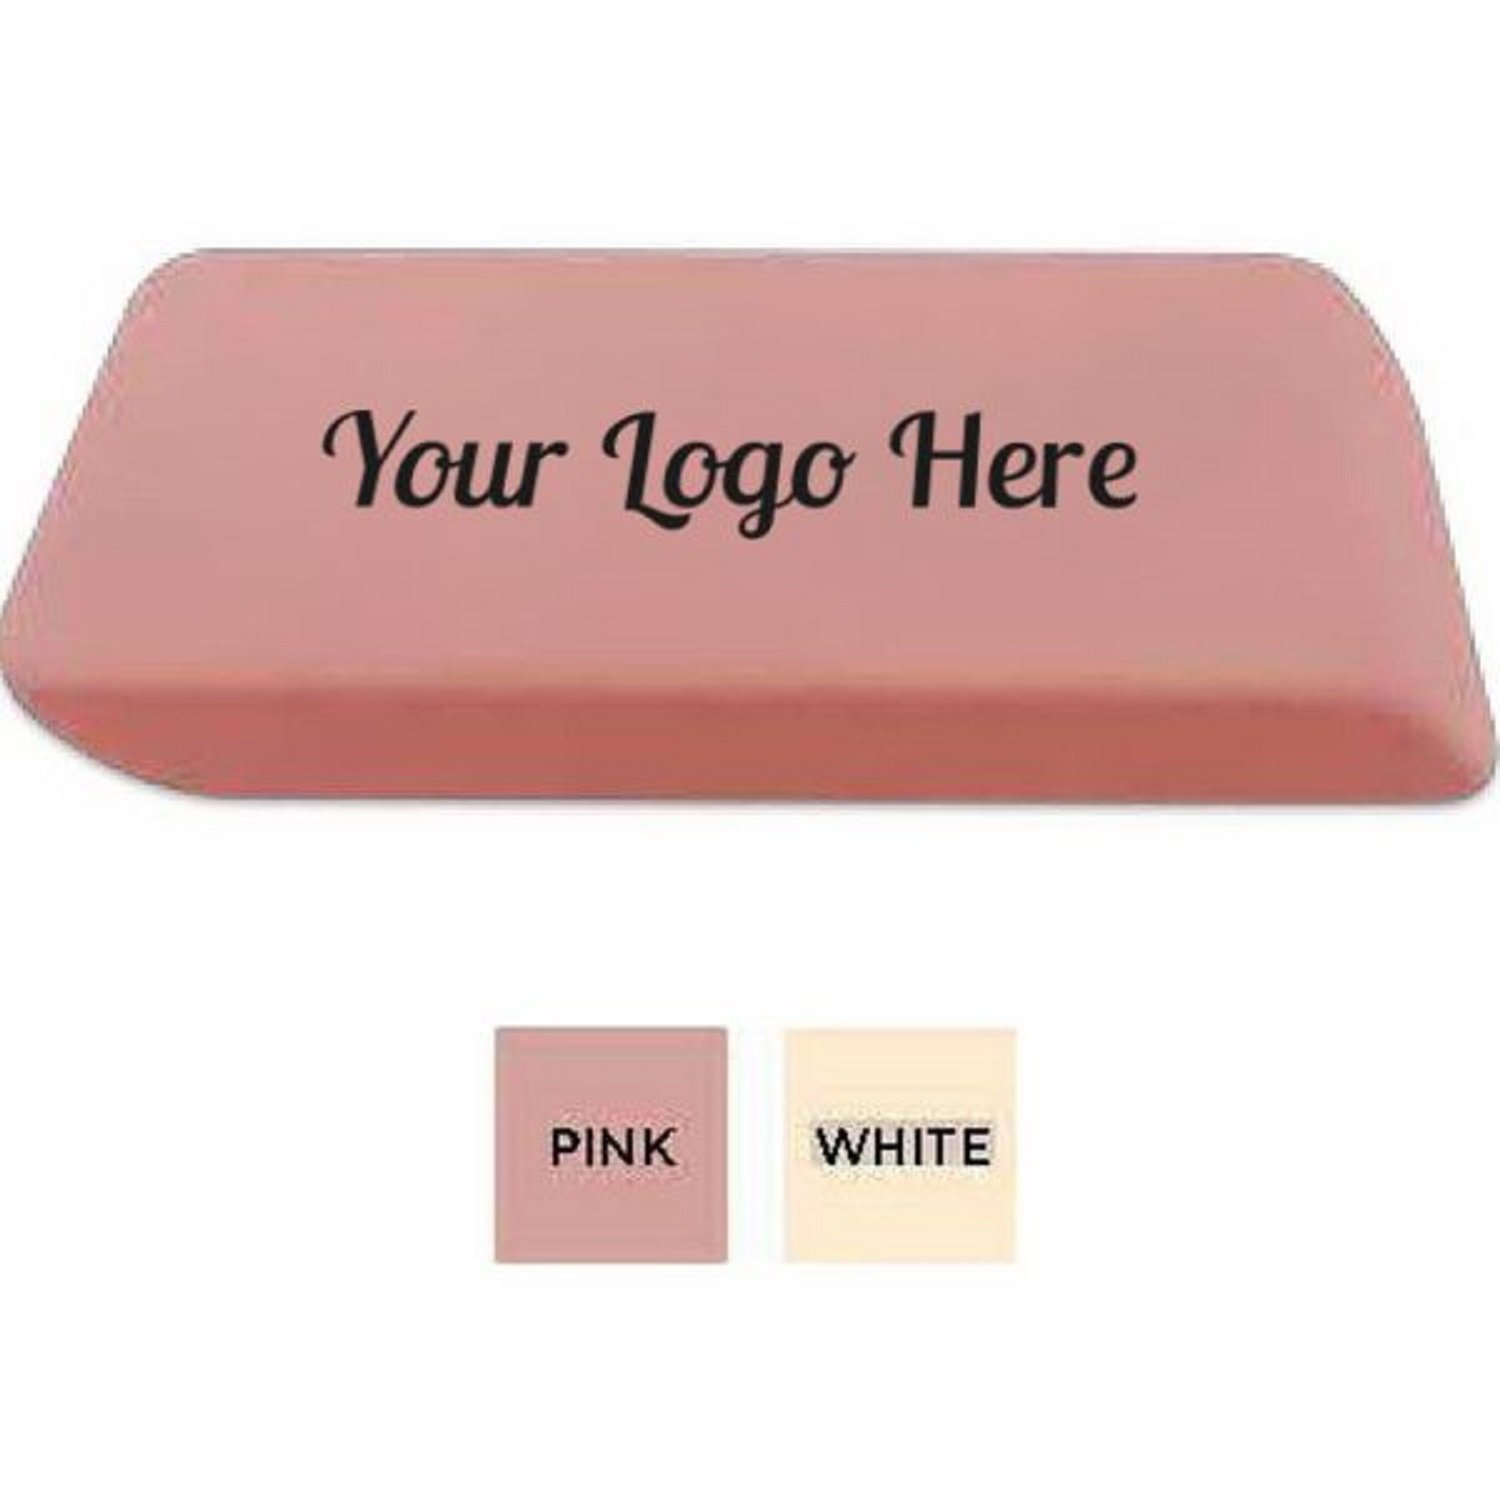 250 Personalized Jumbo Eraser Imprinted With Your Logo Or Message